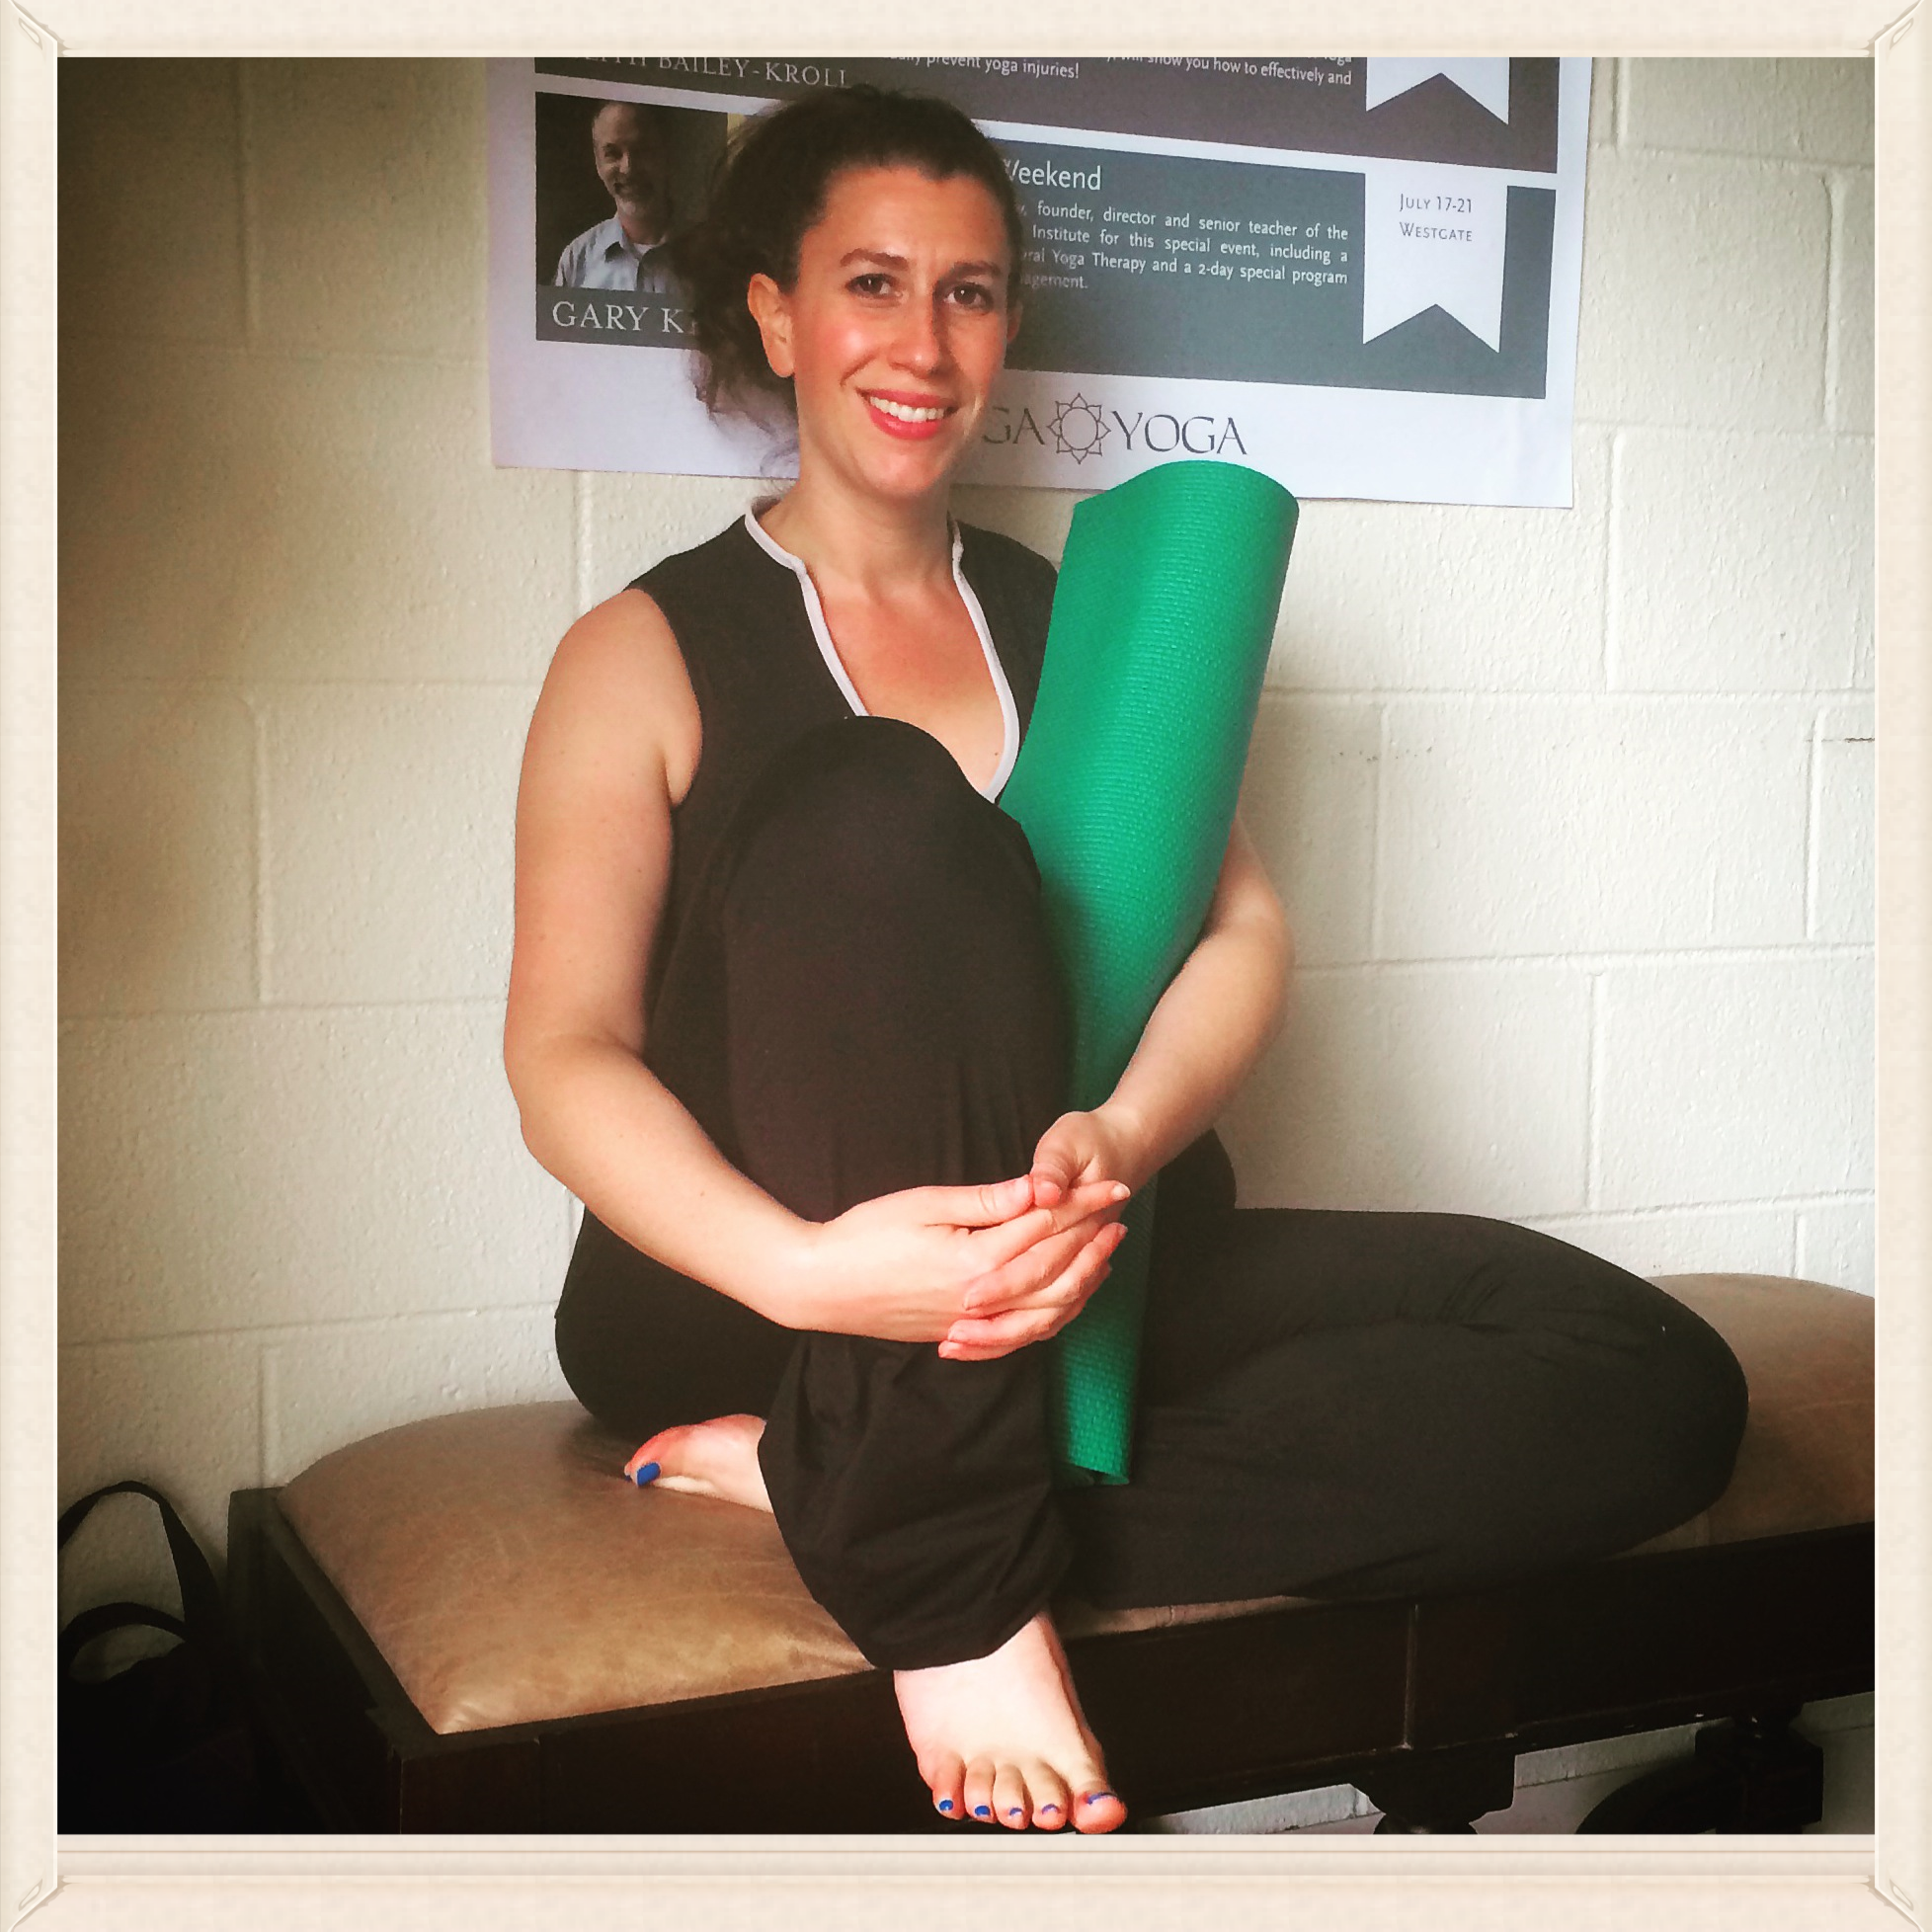 Shanna before class at a favorite local yoga studio, prepping to get her zen on!